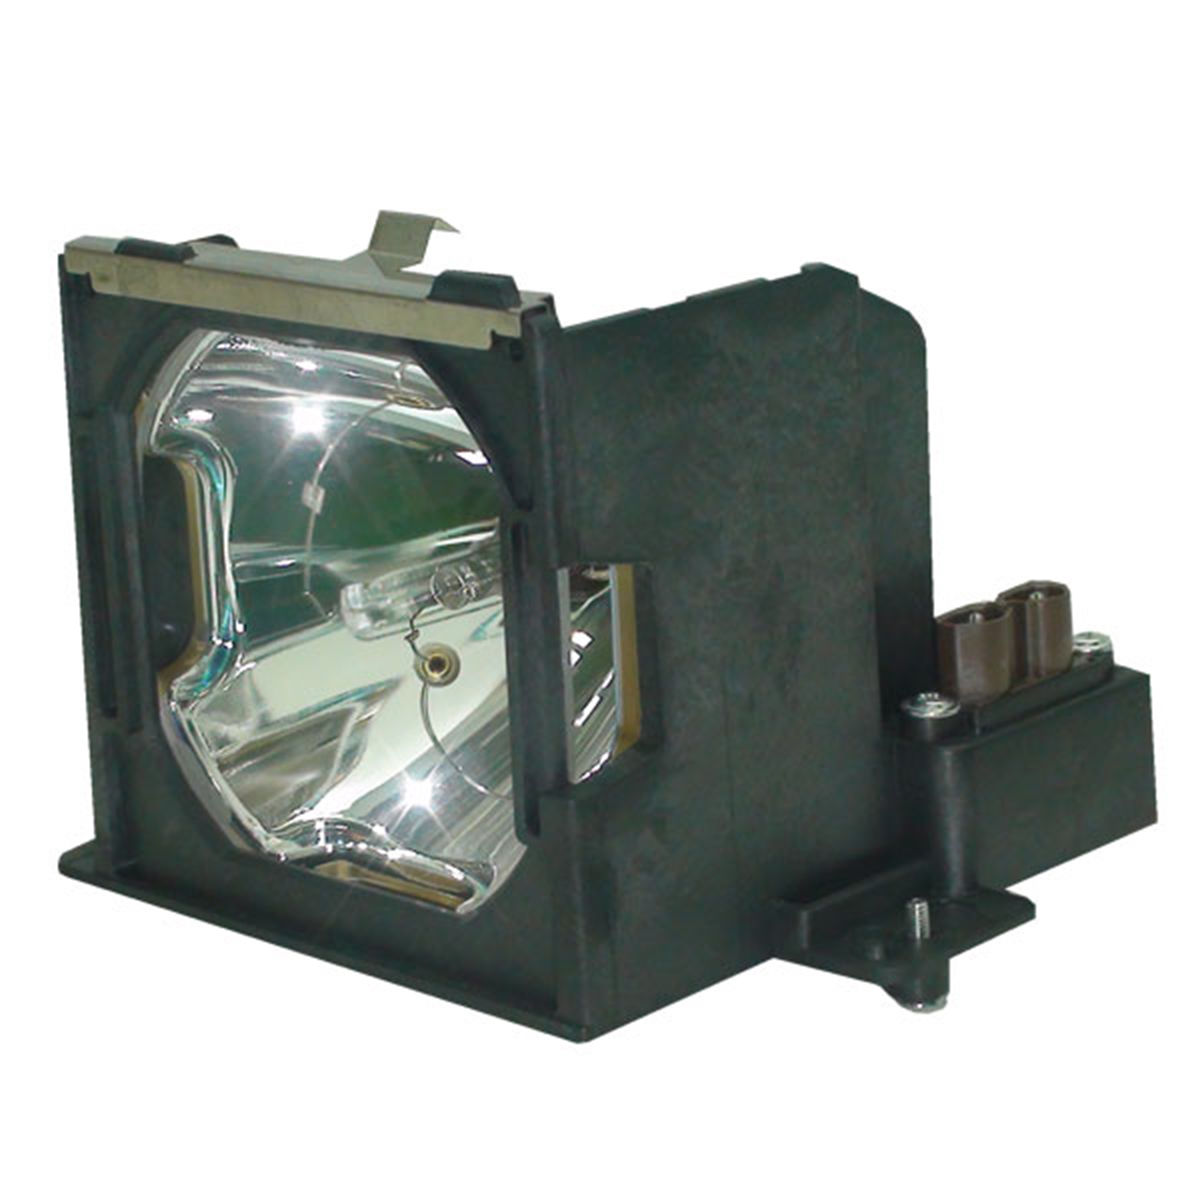 SP-LAMP-011 SPLAMP011 for Infocus LP810 Projector Bulb Lamp With housing projector lamp uhp 300 250w 1 1 e21 7 5j j2n05 011 lamp with housing for sp840